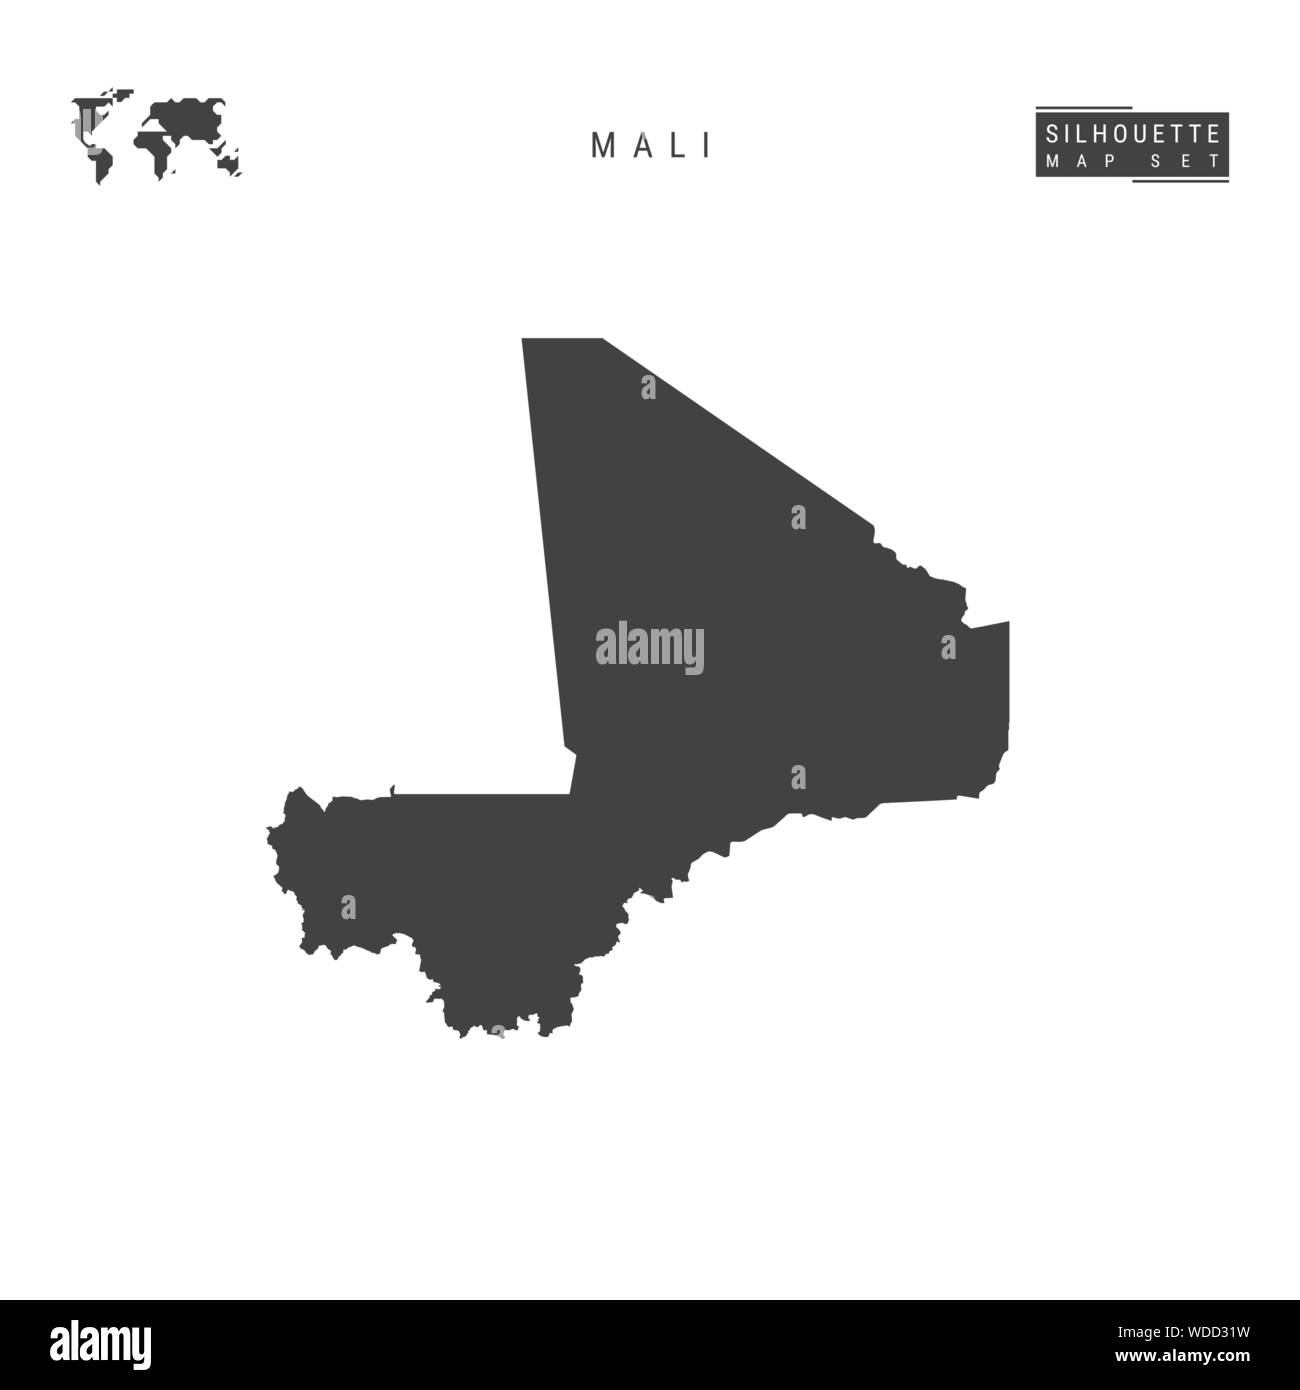 Mali Blank Vector Map Isolated on White Background. High-Detailed Black Silhouette Map of Mali. Stock Vector